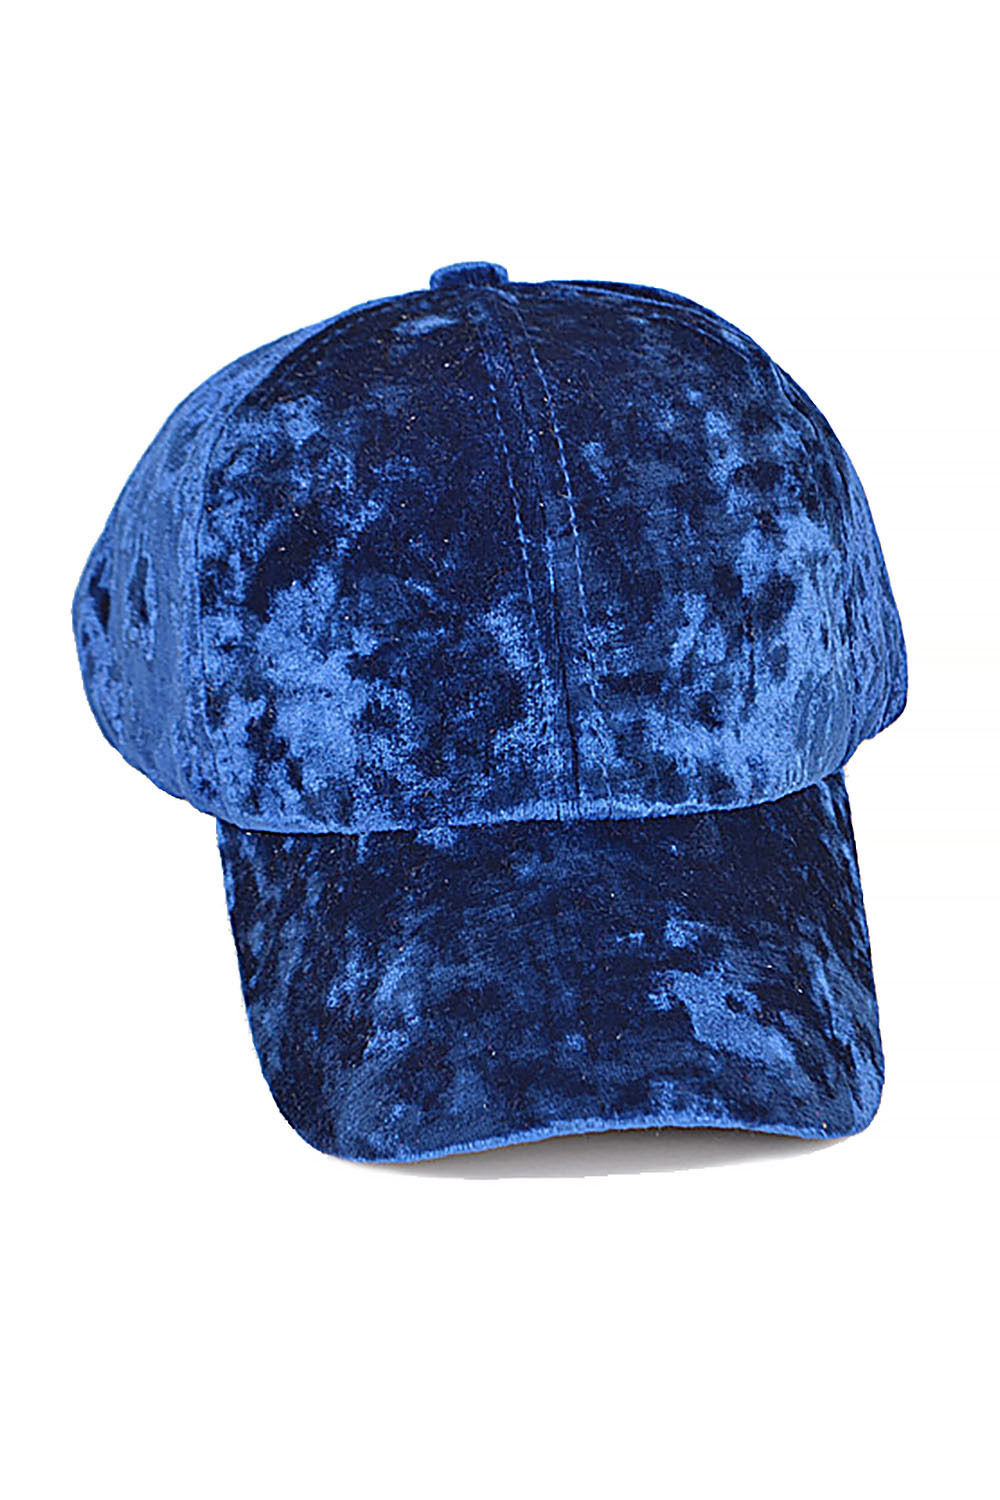 8ad4428c18e4c2 Unisex Men Women New Look Faux Suede Baseball Cap Street Fashion Hat ...